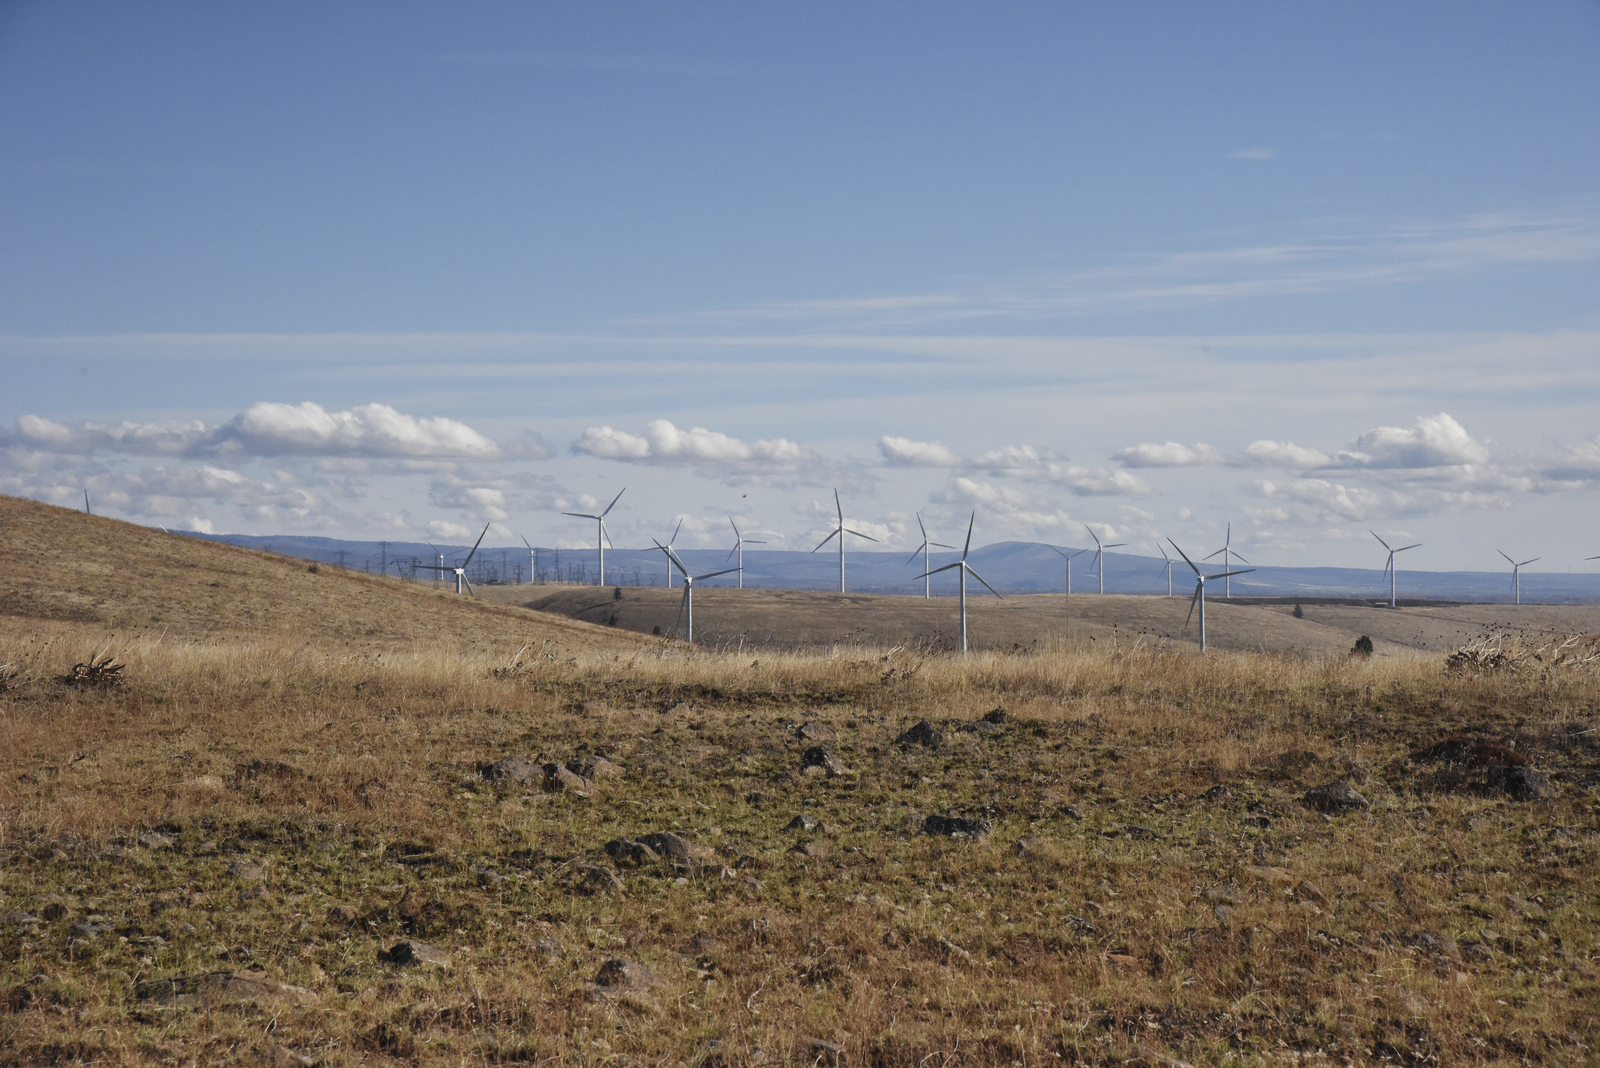 View of an Eastern Washington wind farm from Swauk Creek Ranch.Photo by Anna Snook.